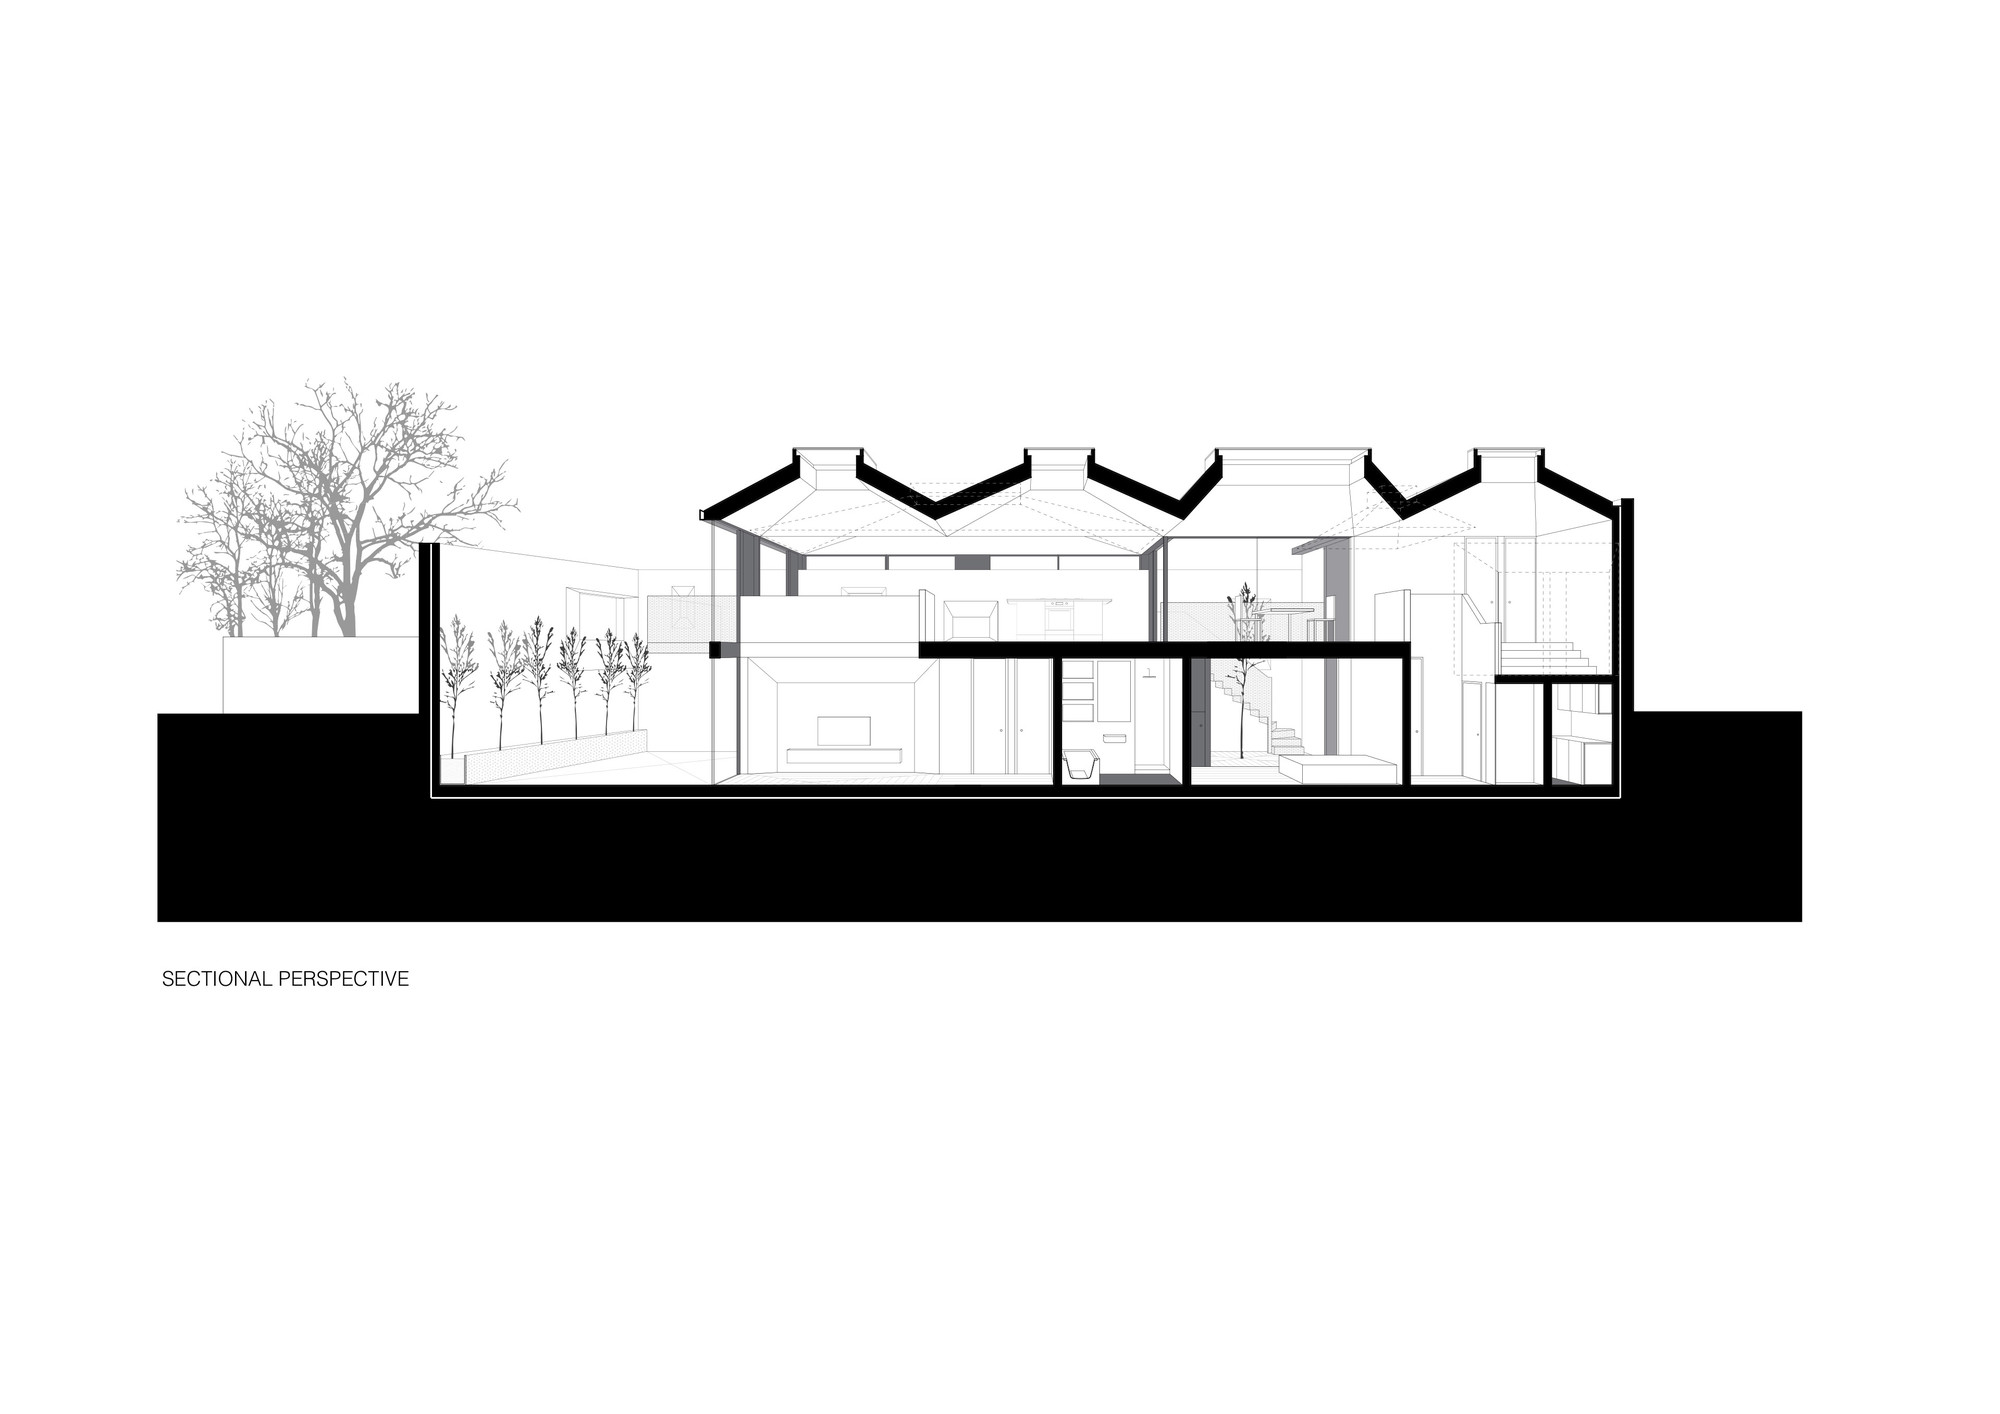 Peter Guthrie Renders 11 likewise Porte Jeune Mulhouse Topotek 1 further 55758133e58ece23c8000185 Vaulted House Vppr Section moreover 5321ea17c07a8042fc00007d Osulloc Tea House Pavilions Mass Studies Ground Floor Plan Innisfree Annex in addition Marsicehouseproject1. on house architecture